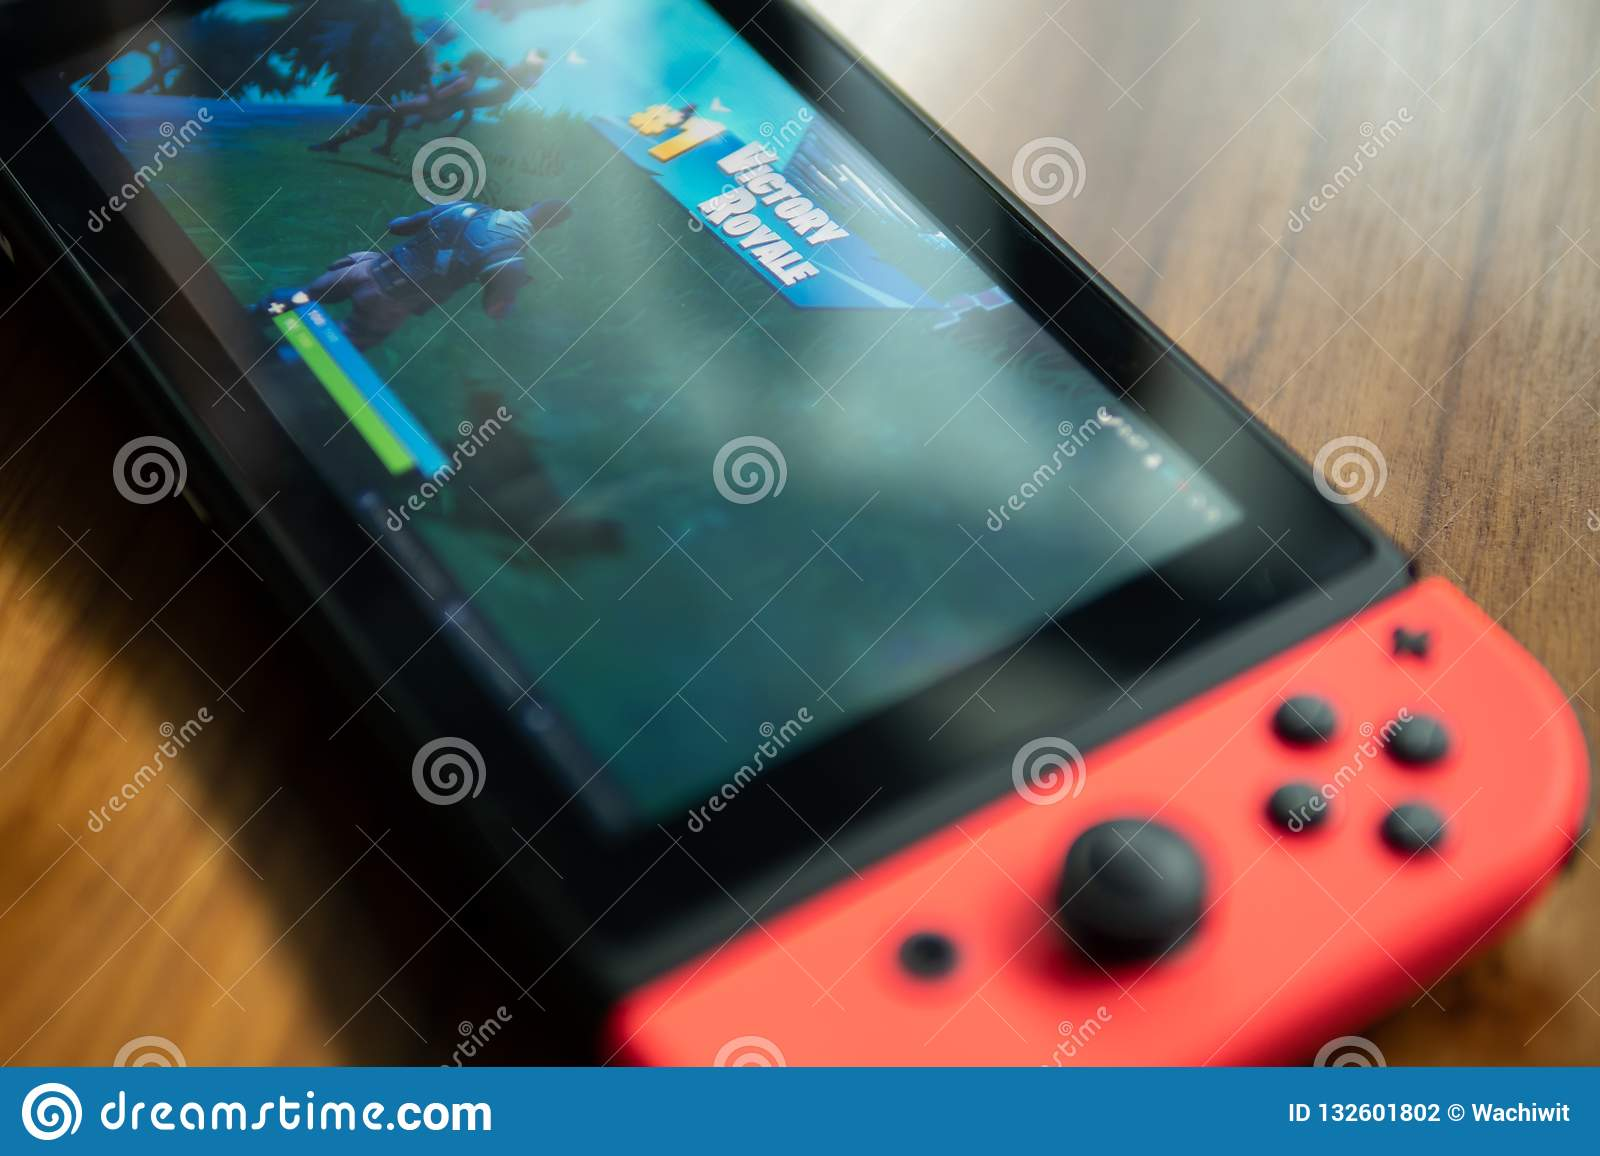 Nintendo Switch with Fortnite game